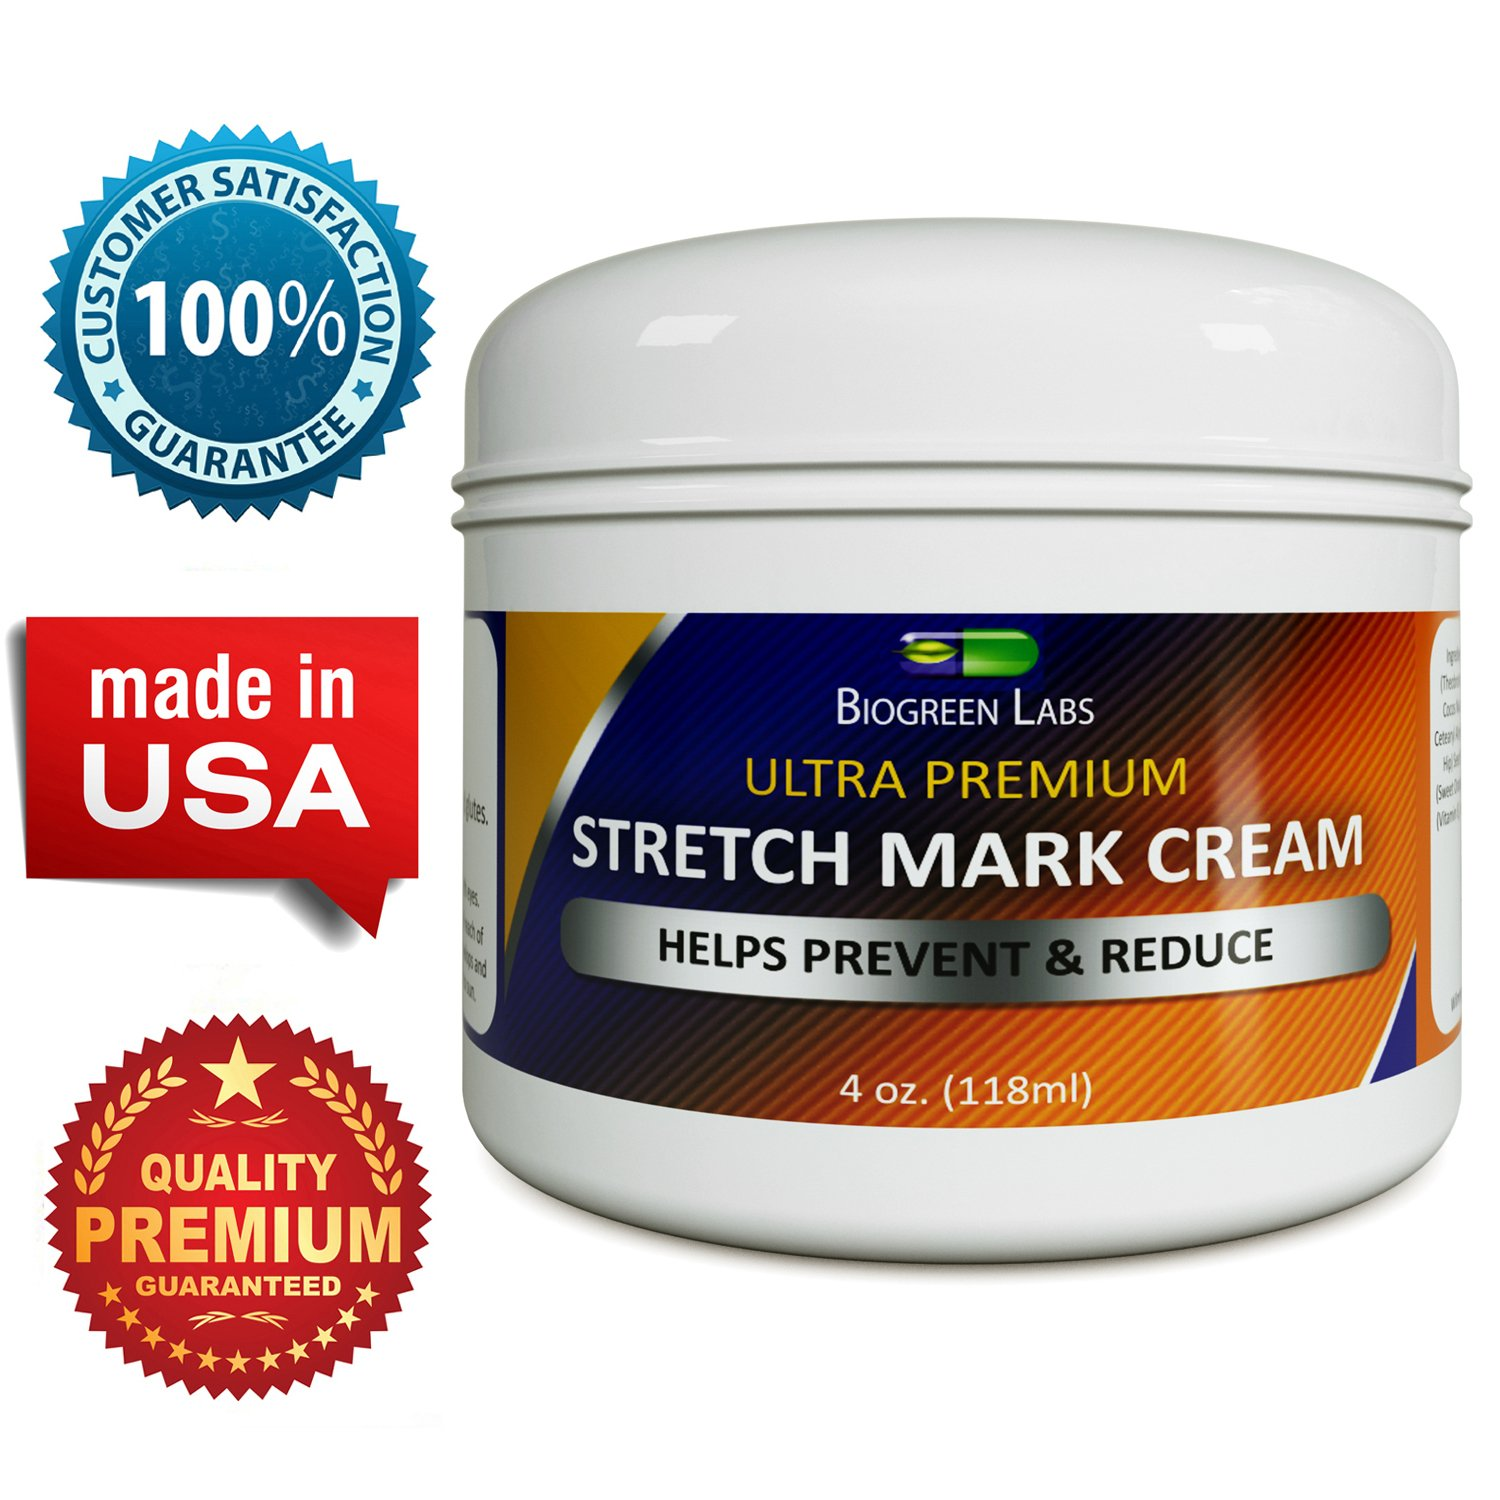 Best Stretch Mark & Scar Fading Cream for Women & Men - Reduces Pregnancy Marks & Fades Scars, & Wrinkles - Shea Butter & Jojoba Oil - - GMP Certified - USA Made - Guaranteed by California Products, 4 fl. oz./ 118 ml